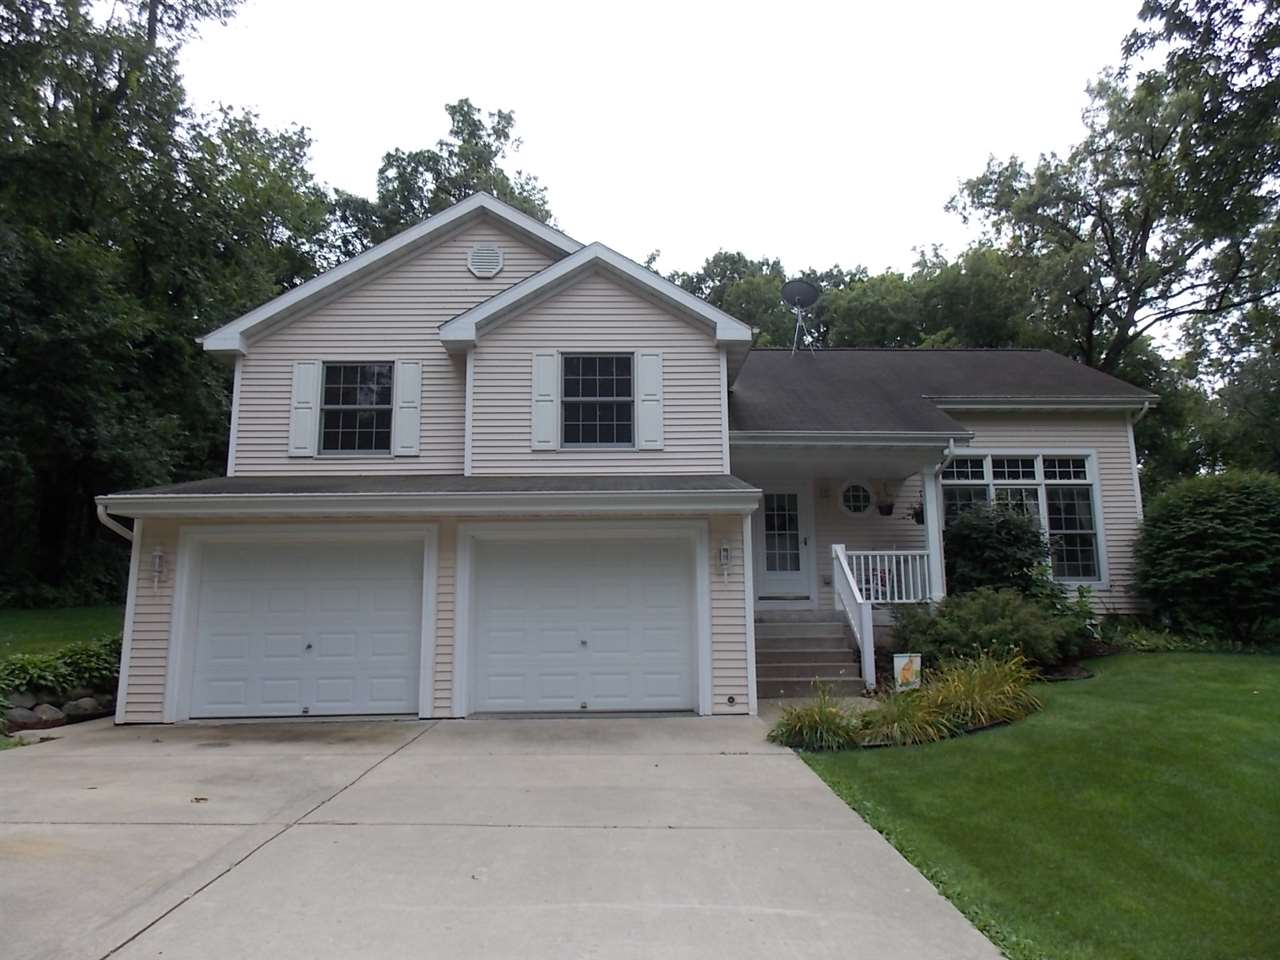 9149 W Topp Rd, Center, WI 53536